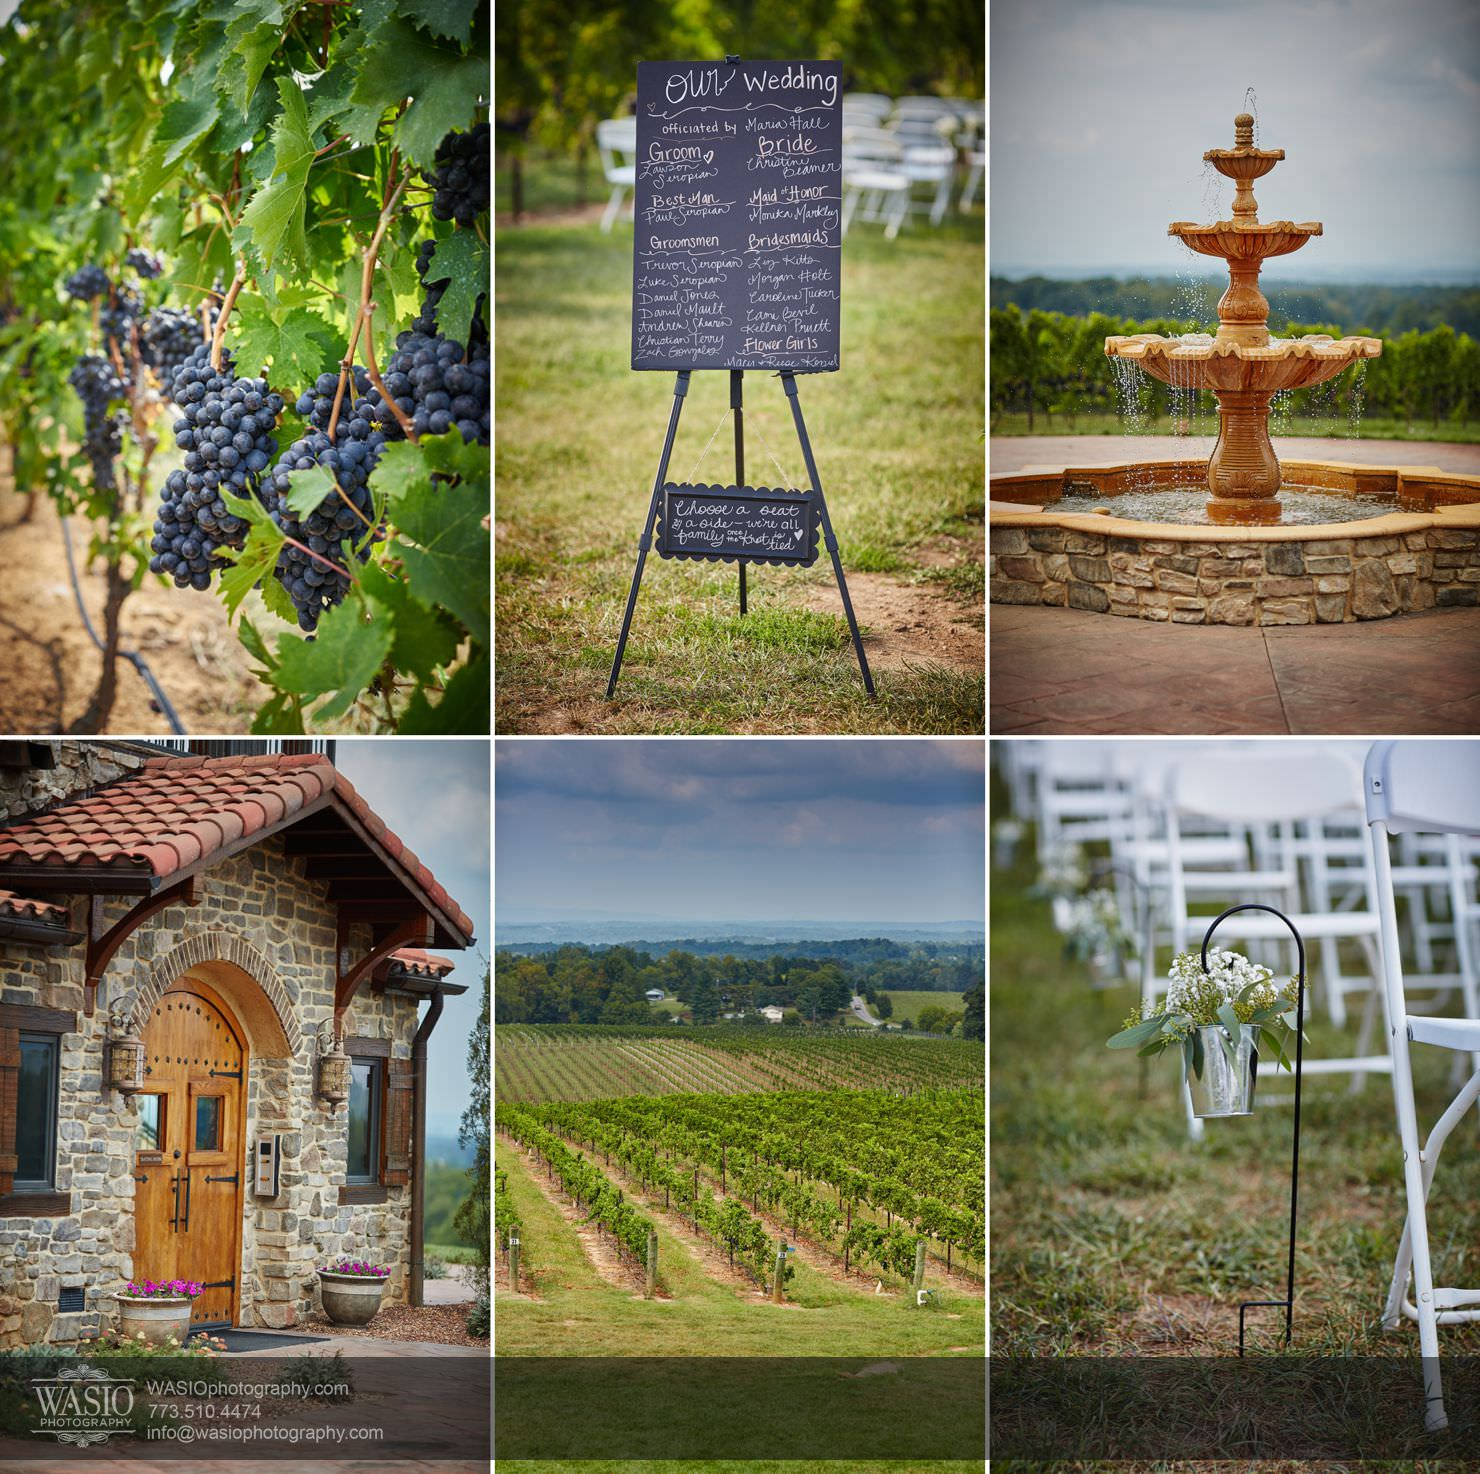 10_Raffaldini-Vineyards-Wedding_Christine-Lawson_CHRISTINE-COLLAGE Raffaldini Vineyards Wedding - Christine & Lawson